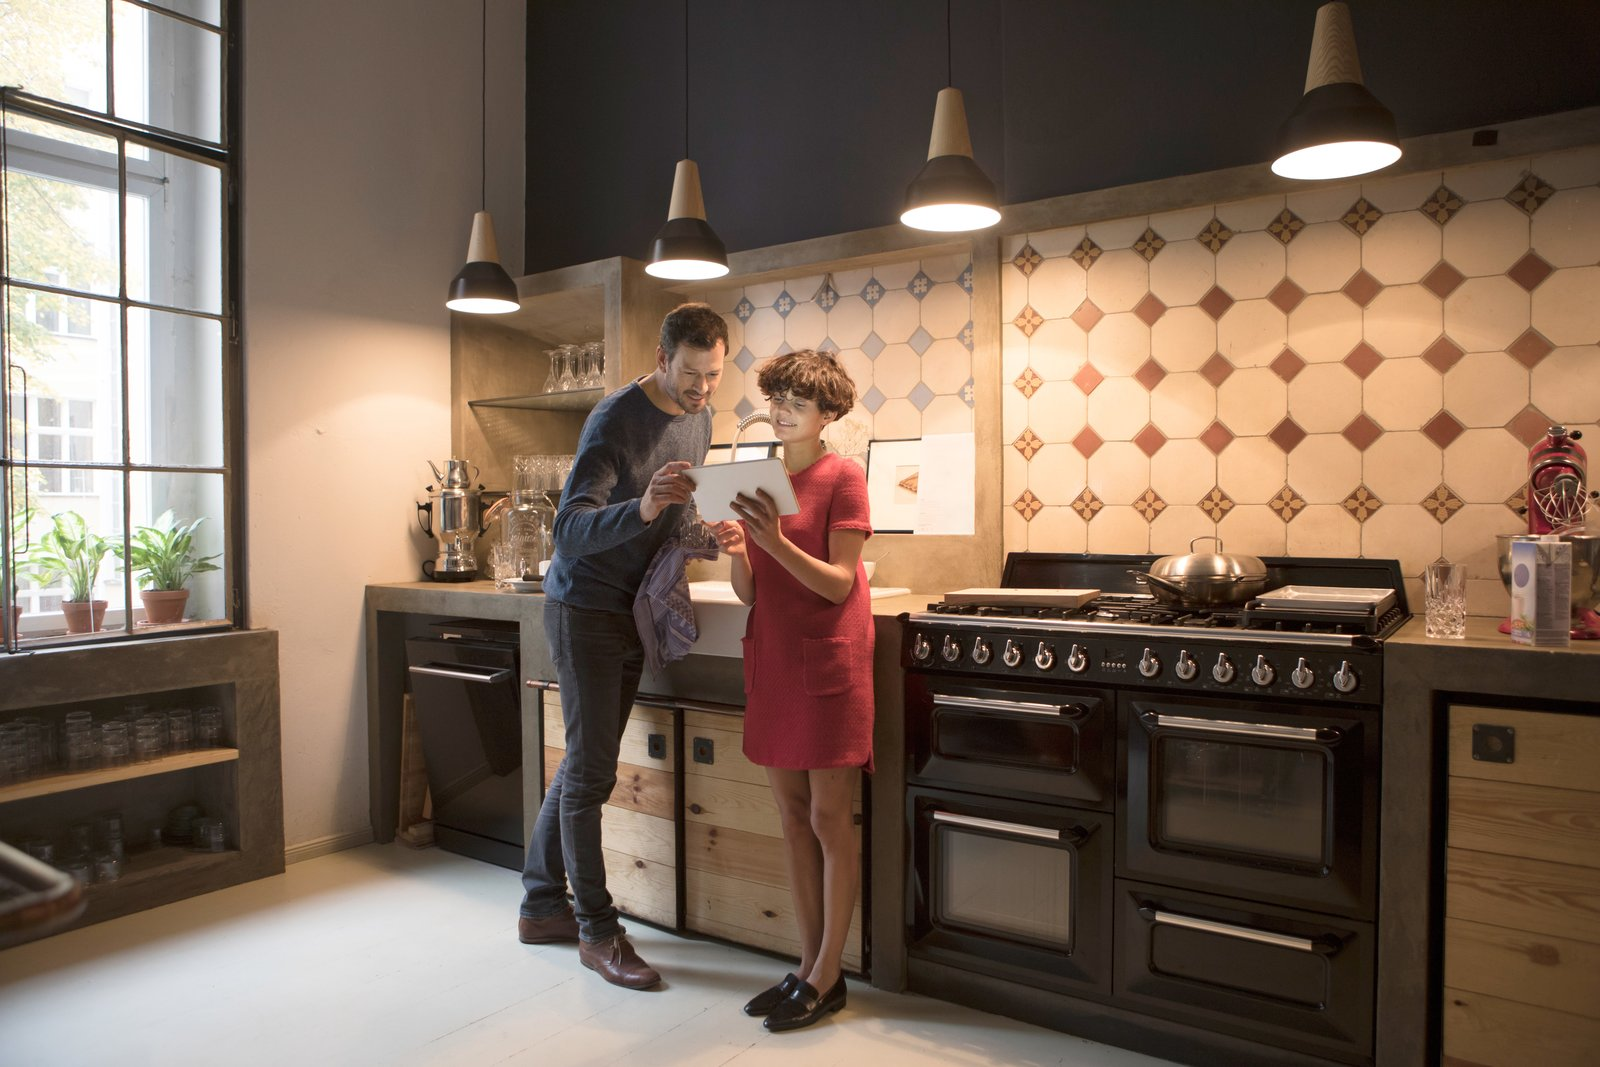 Photo 1 of 7 in The Starter Guide to Assembling Your Smart Home